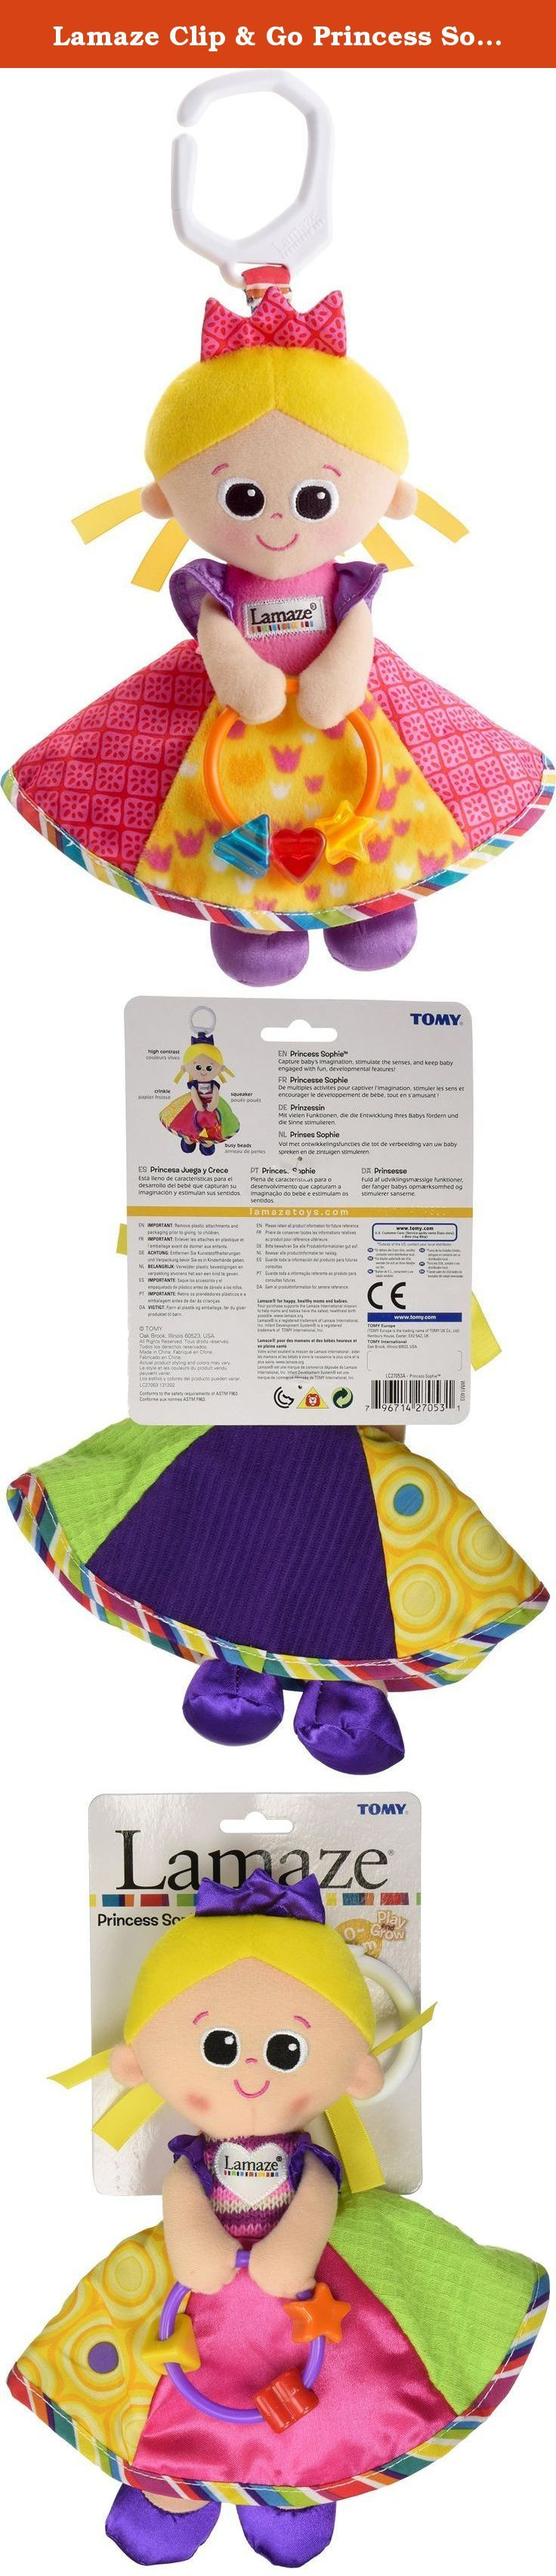 Lamaze Clip & Go Princess Sophie. Royalty never looked or felt so good as Princess Sophie. She holds her jewel clacking beads in her hands for baby to play with, and her skirt crinkles to keep baby's interest. Her bold colors and contrast prints help with visual stimulation and development. The high contrast patterns stimulate vision. It crinkles for auditory development. This is the perfect for baby's first doll. The bold colors and contrast prints help with visual stimulation and...